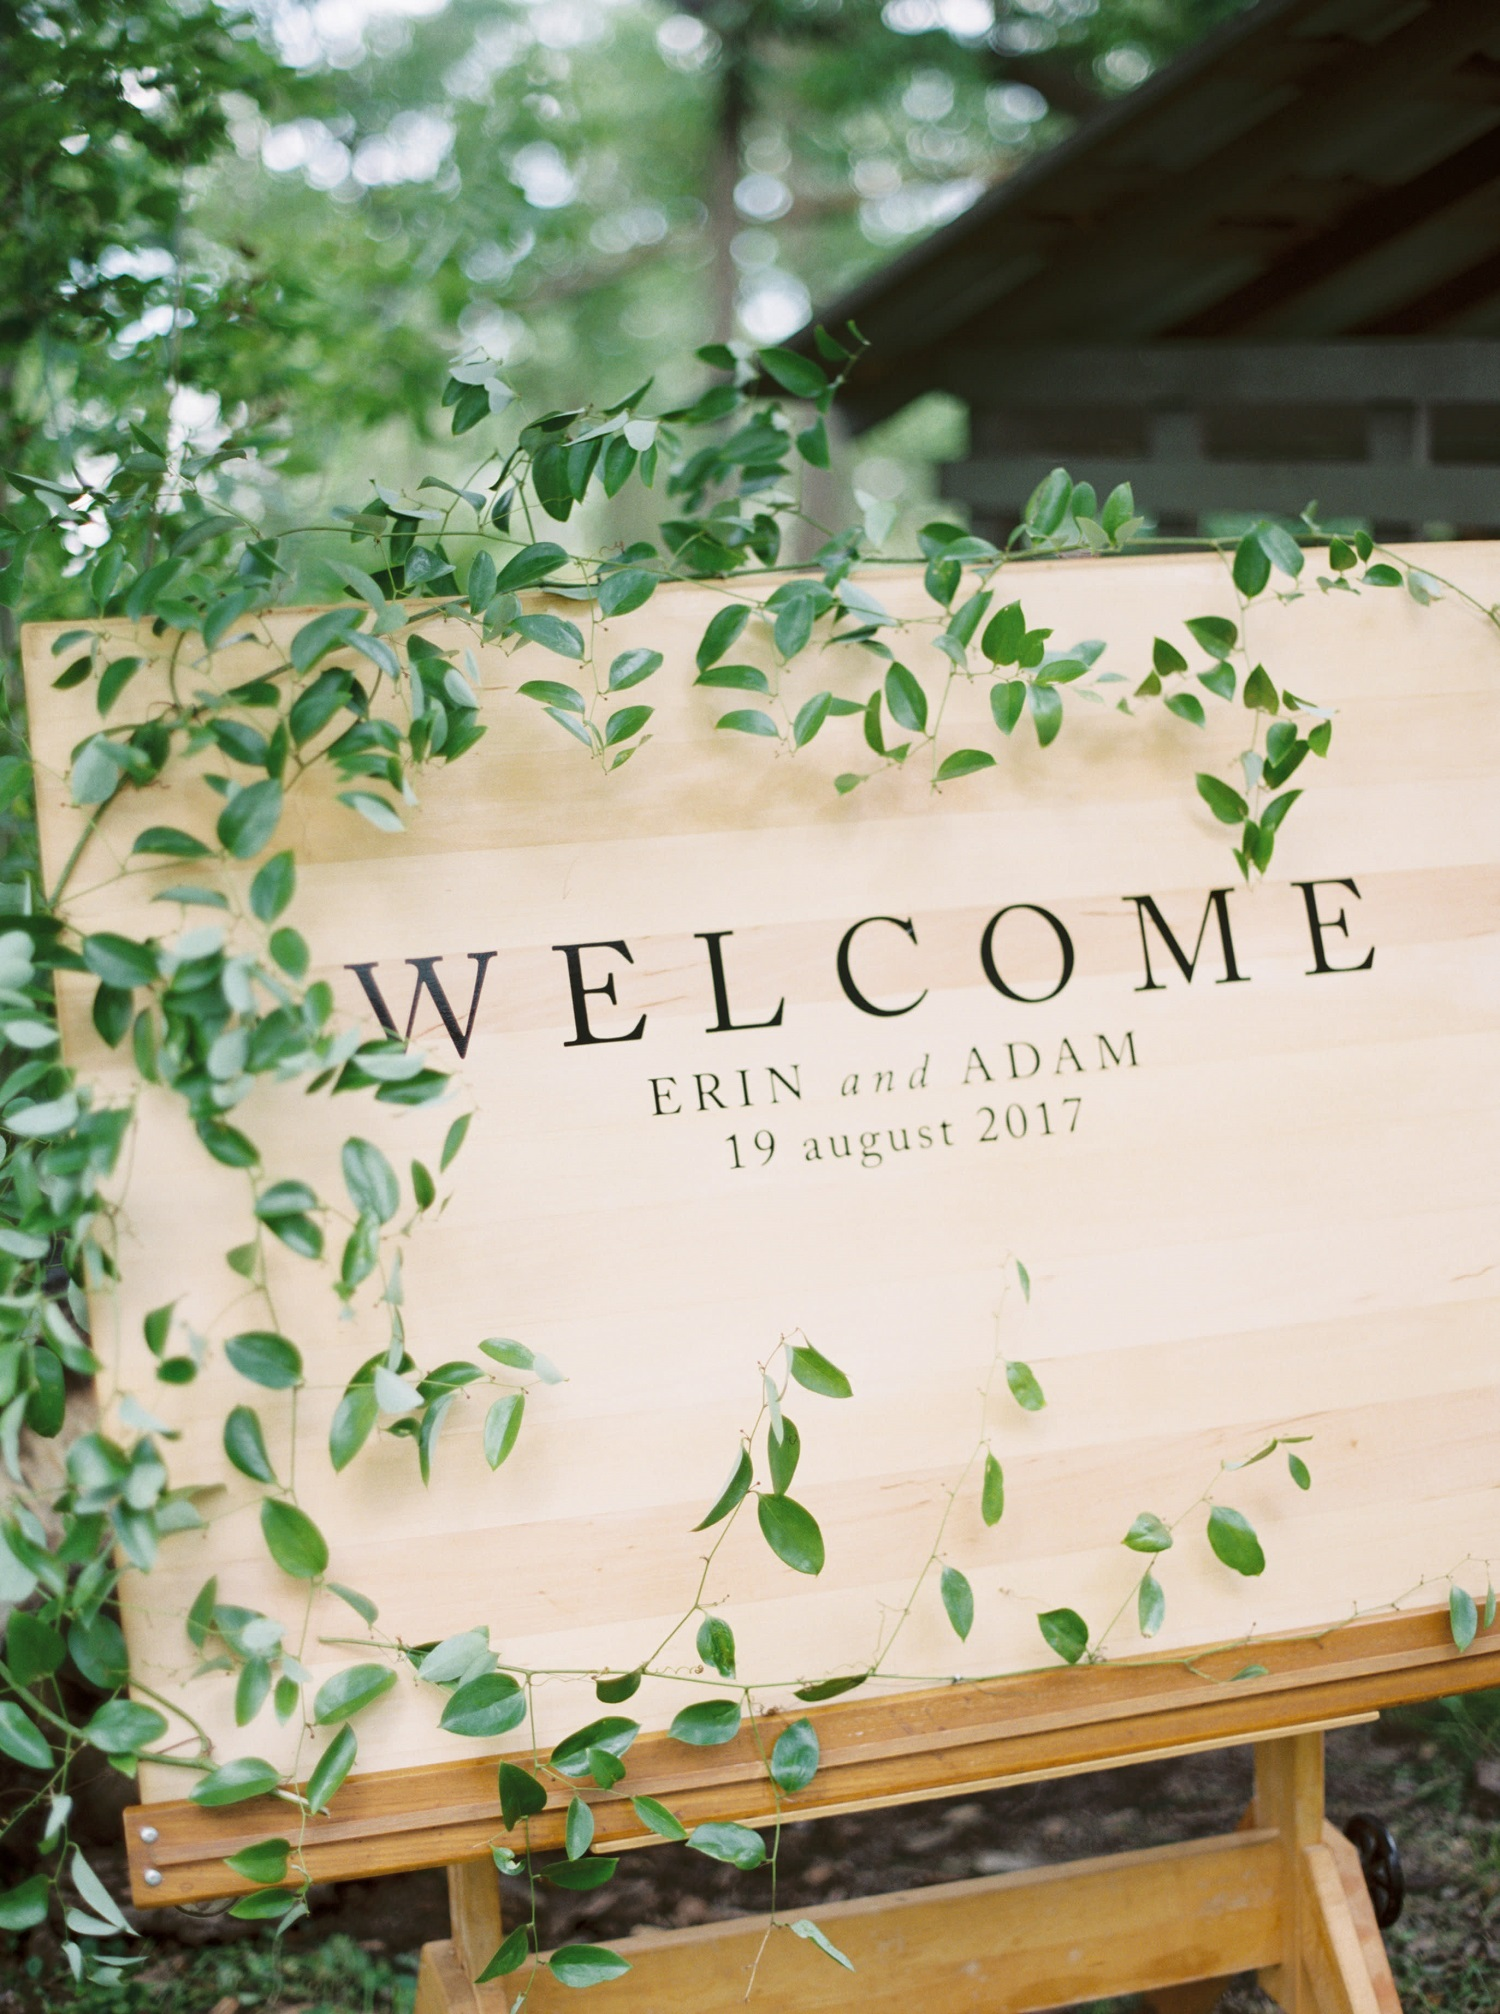 niagara_wedding_planner_243.jpg